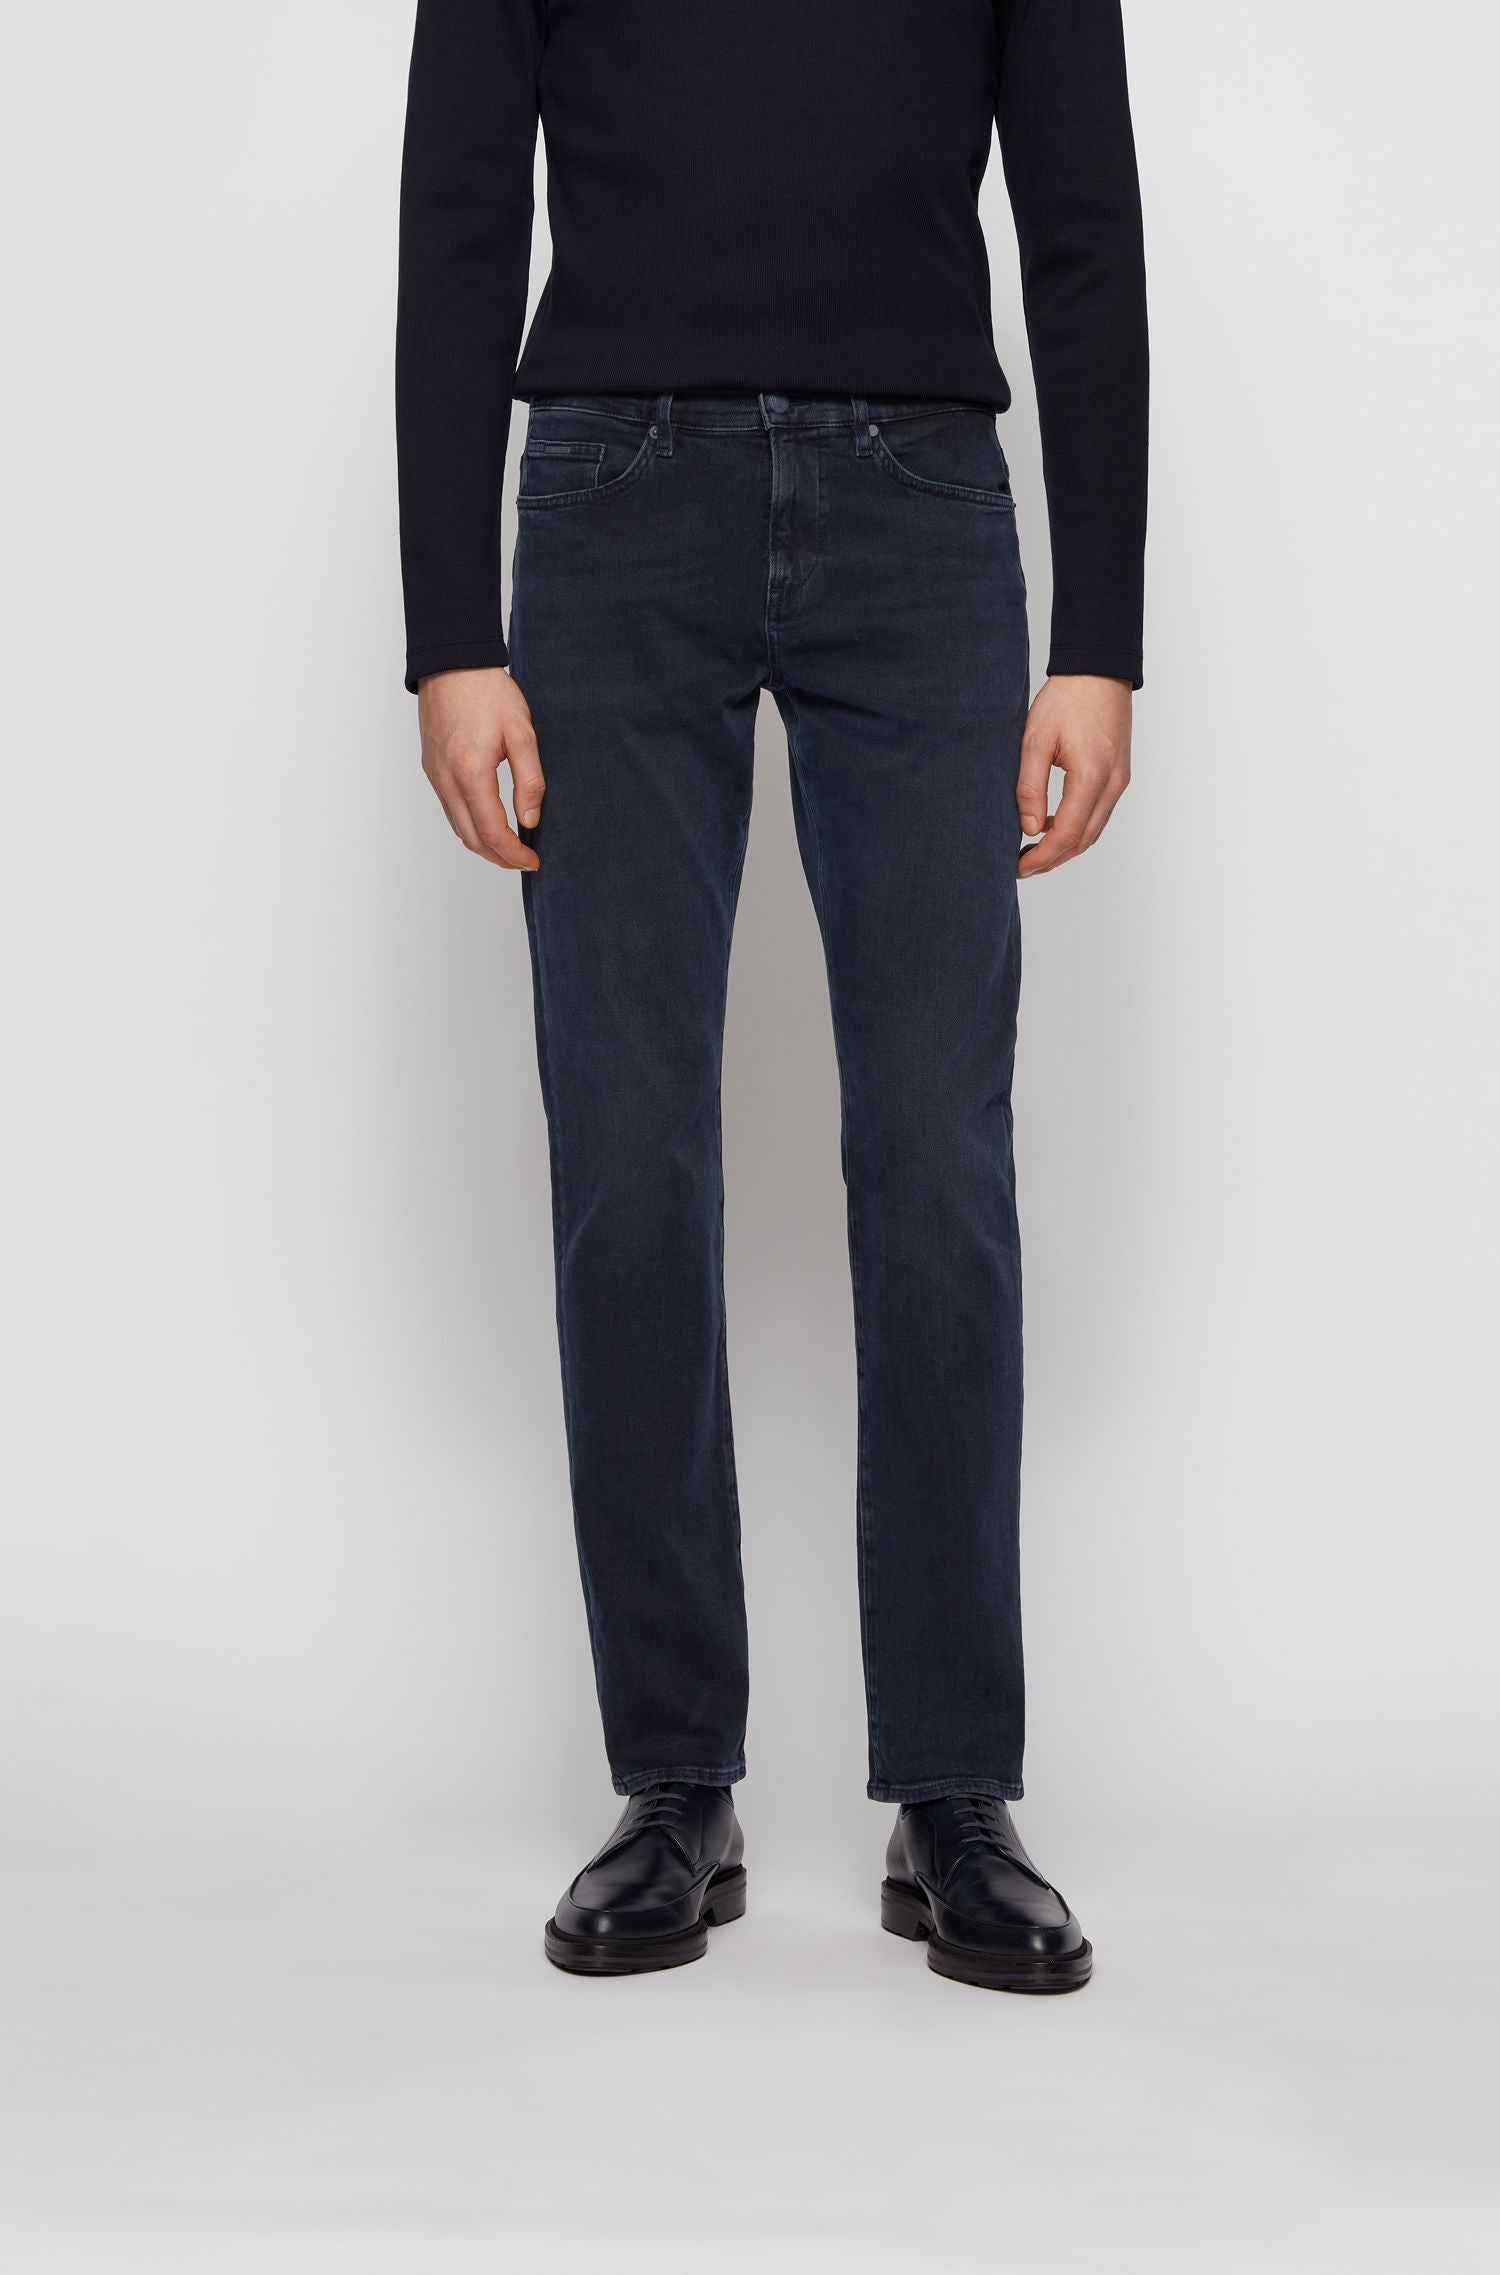 Hugo Boss Delaware Jeans - Dark Blue